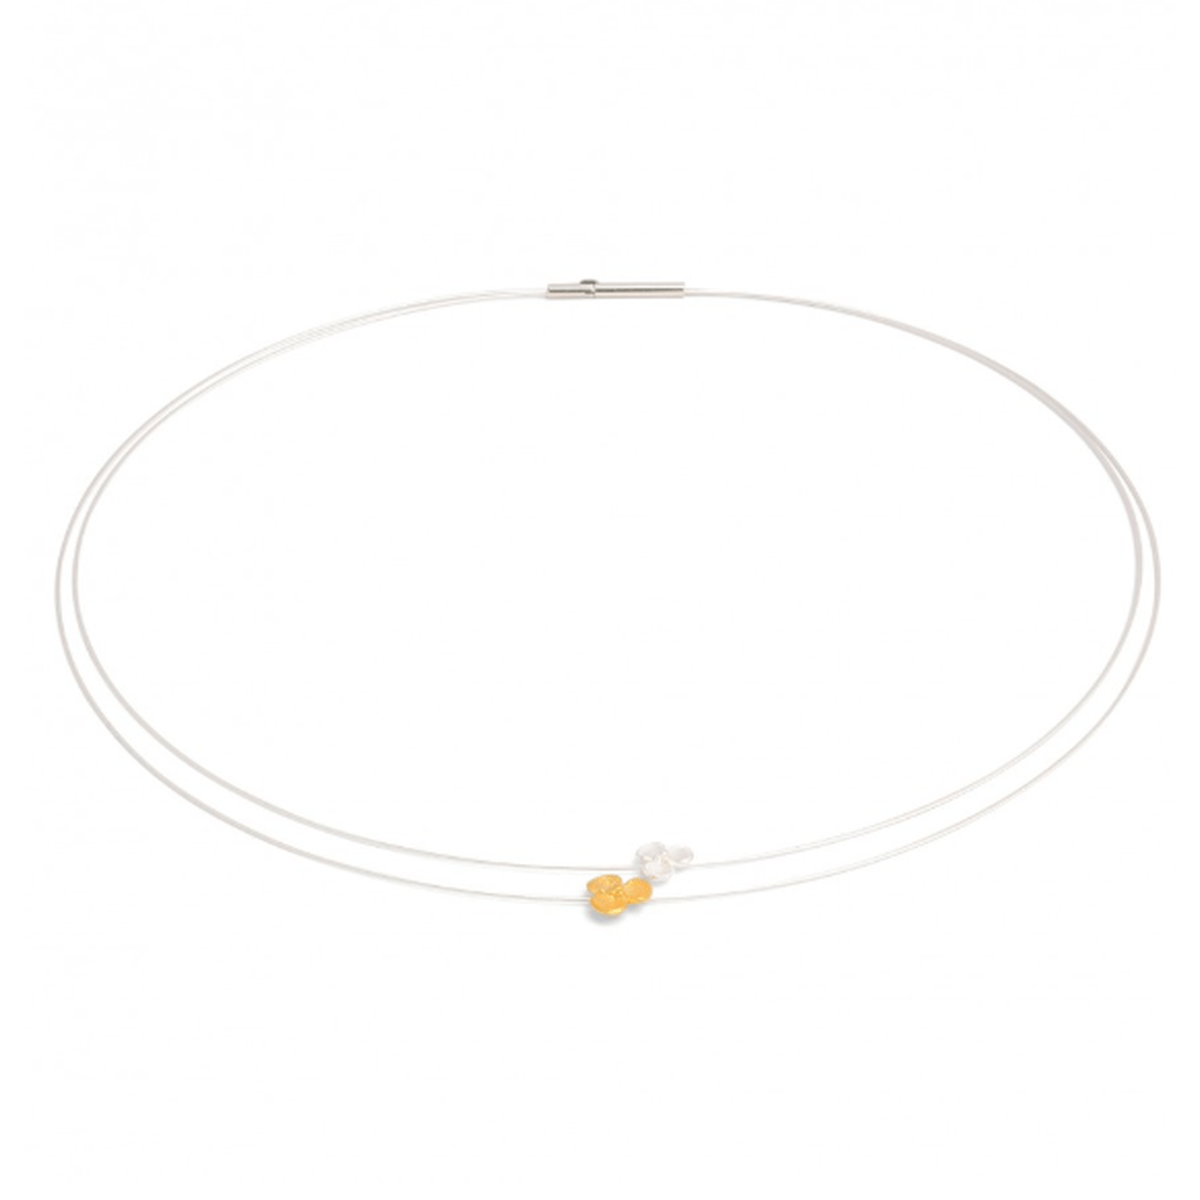 Flowerpair Bicolor Necklace - 87157584-Bernd Wolf-Renee Taylor Gallery